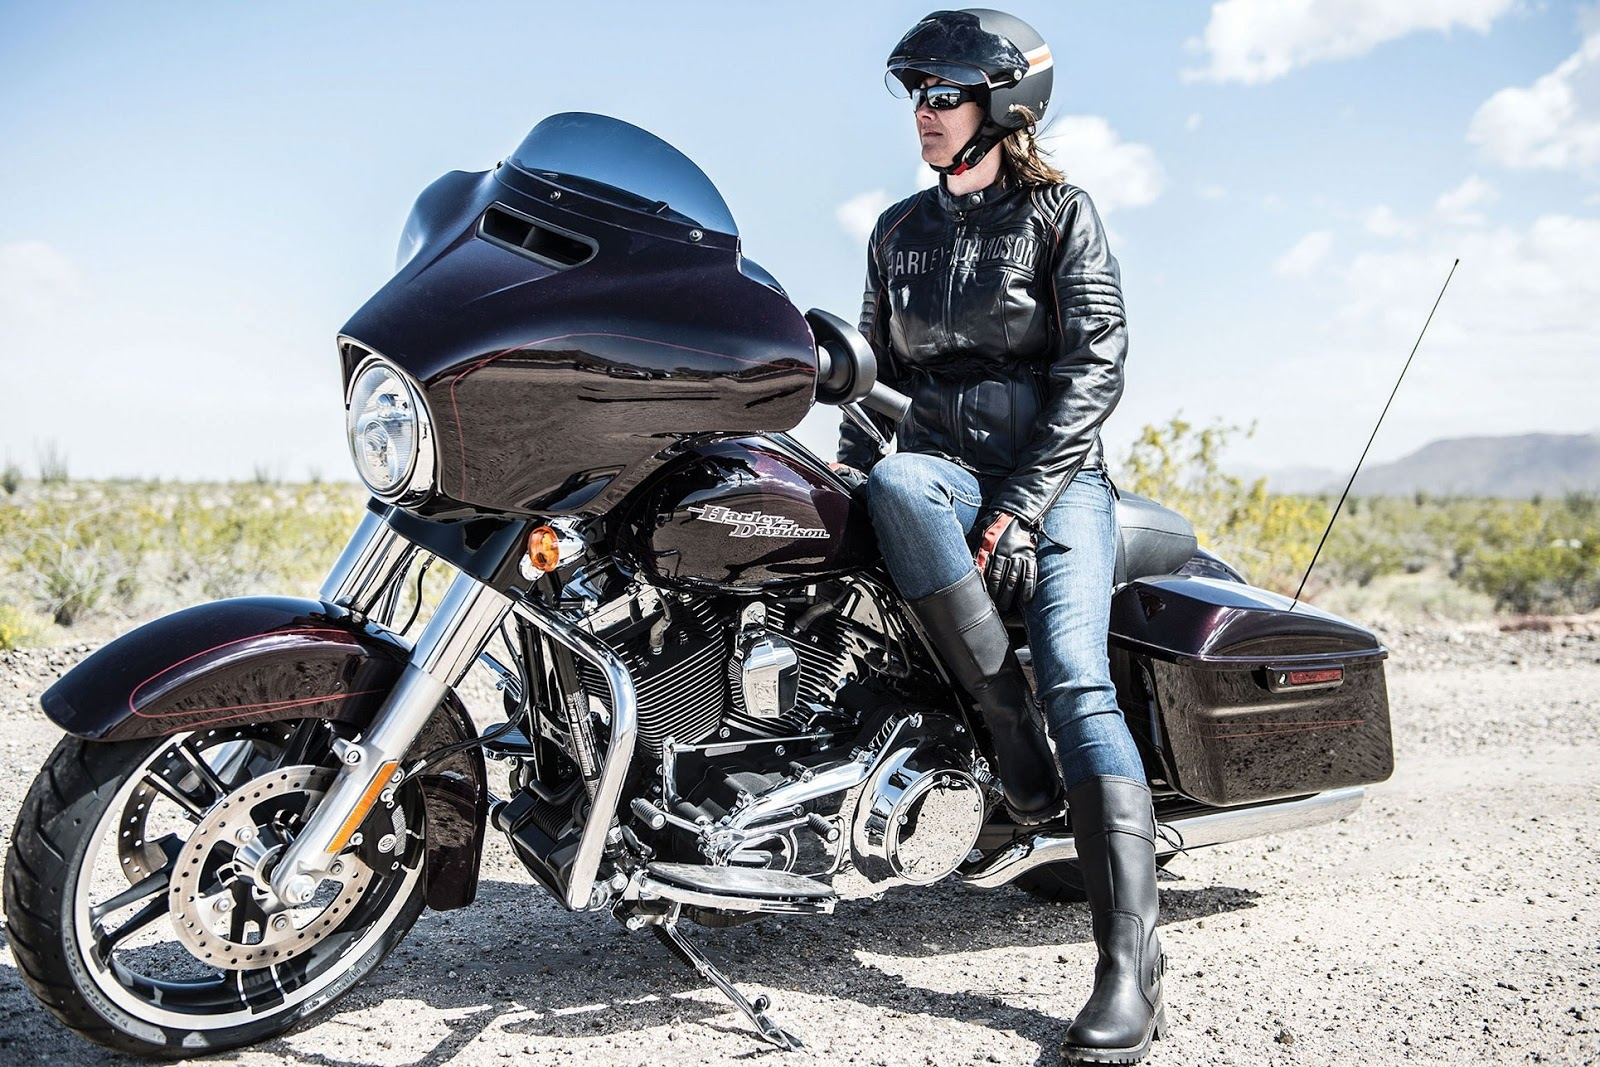 2014 harley davidson street glide and street glide special specifications prices and features. Black Bedroom Furniture Sets. Home Design Ideas